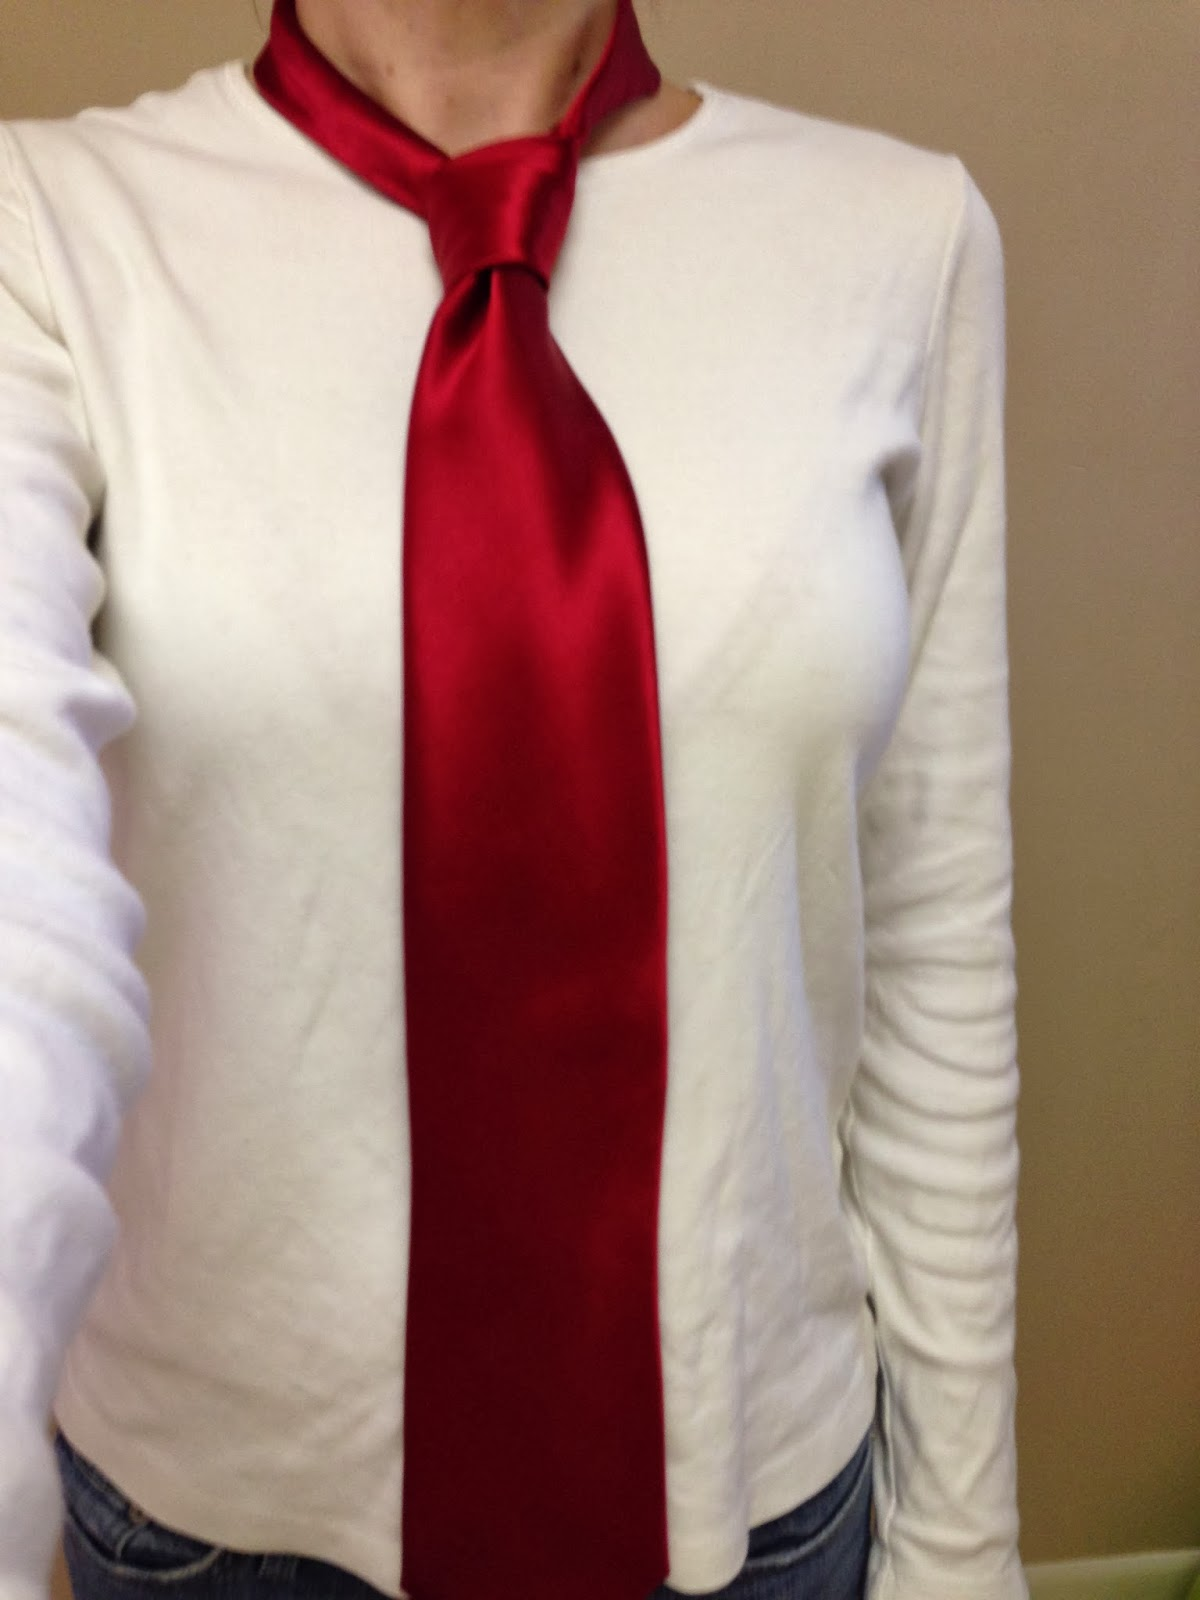 learned to tie a tie